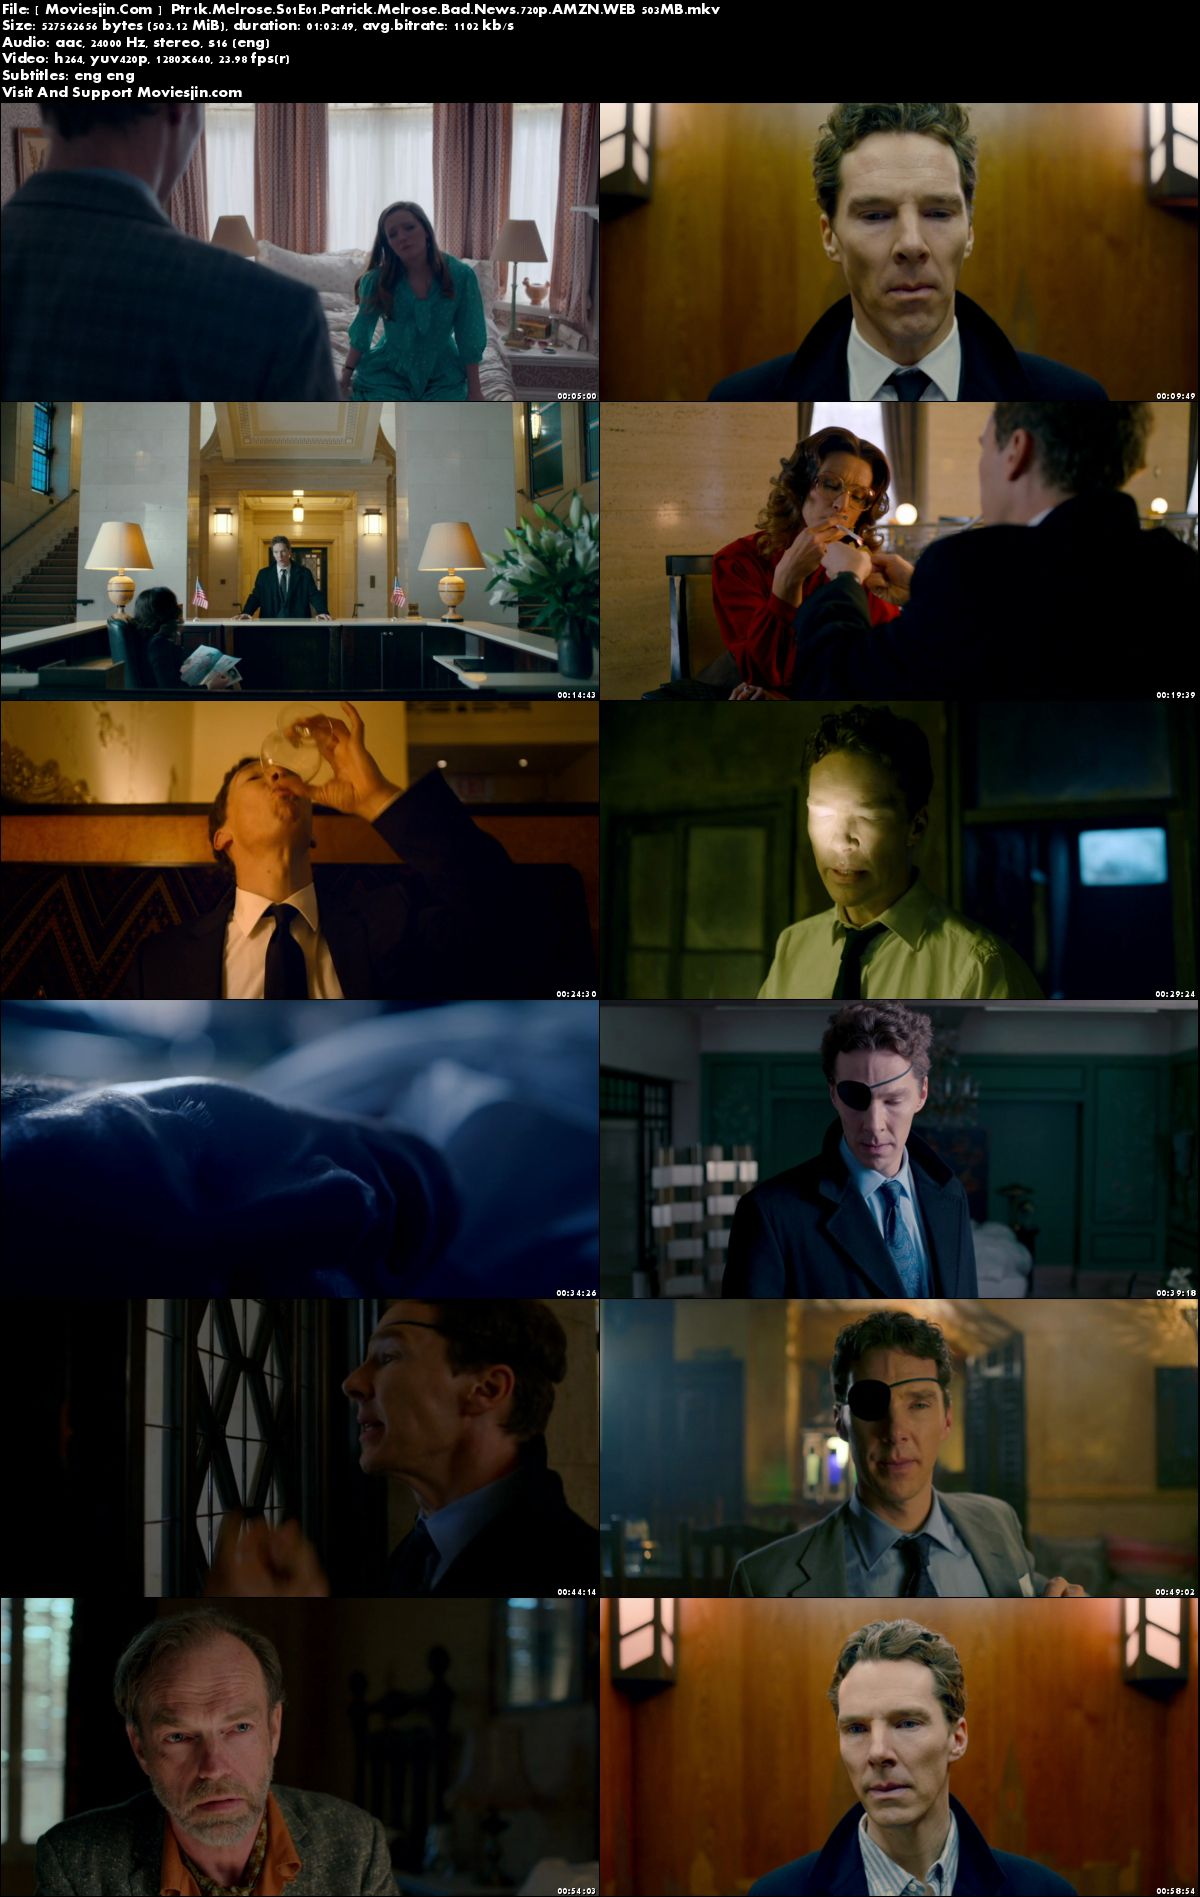 Watch Online Patrick Melrose S01Ep01 720p ESub 505MB WEBDL Full Download mkvcage